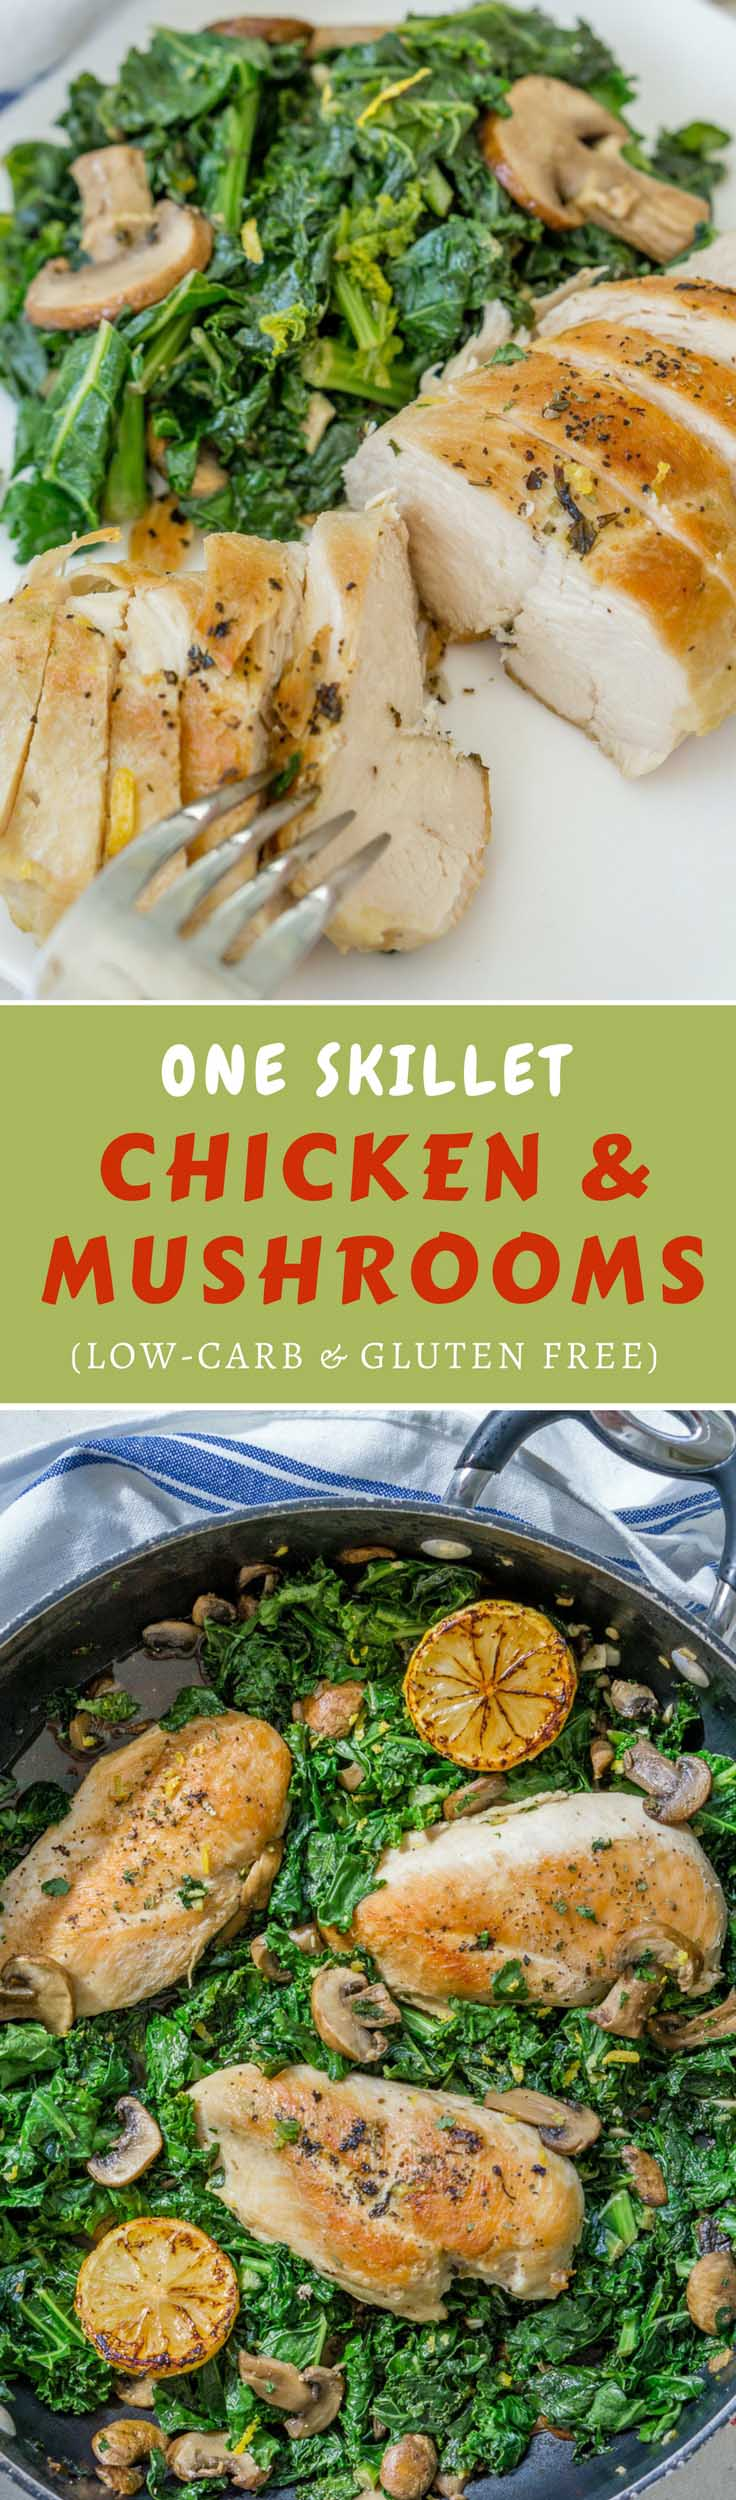 This one-pan Healthy Chicken and Mushroom Skillet with kale is ready in just 35 minutes with minimal cleanup. The lemony garlicky flavor of this dish will have you reaching for seconds! #chickenrecipe #chickenskillet #lowcarbrecipe #kale #onepan #oneskillet #chickendinner #mushroomchicken